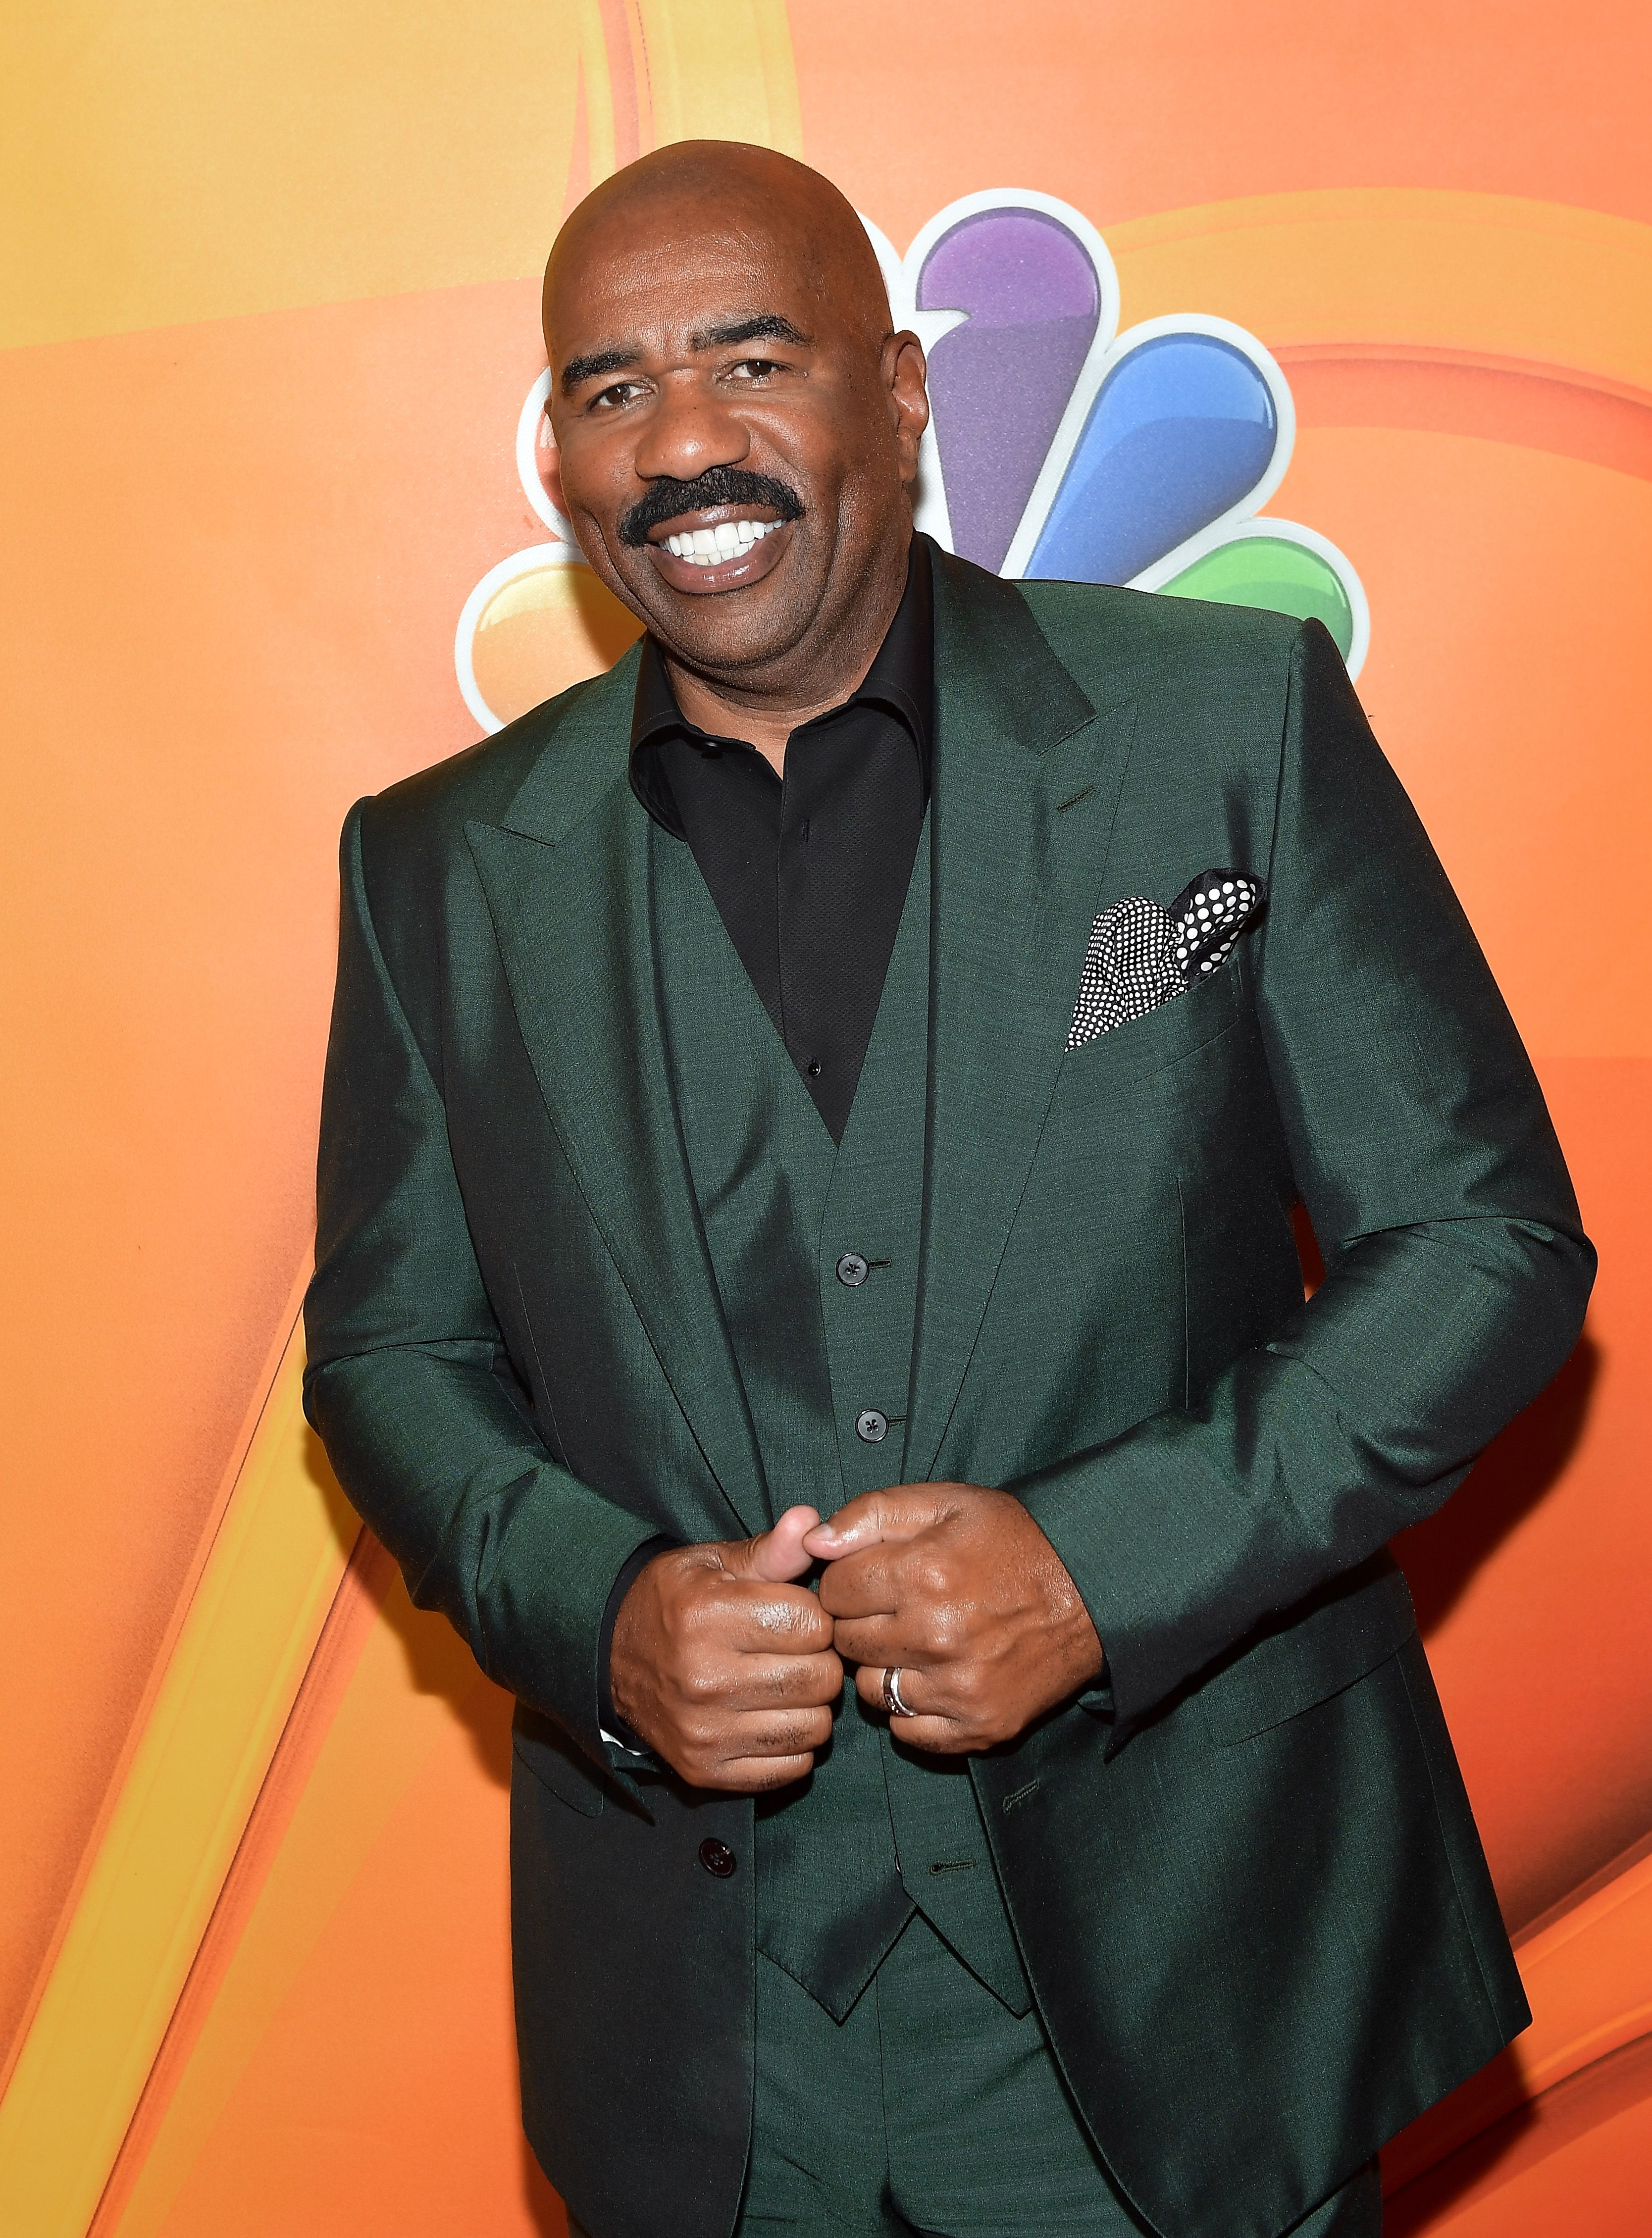 Steve Harvey at the NBCUniversal Summer TCA Press Tour in August 2017. | Source: Getty Images